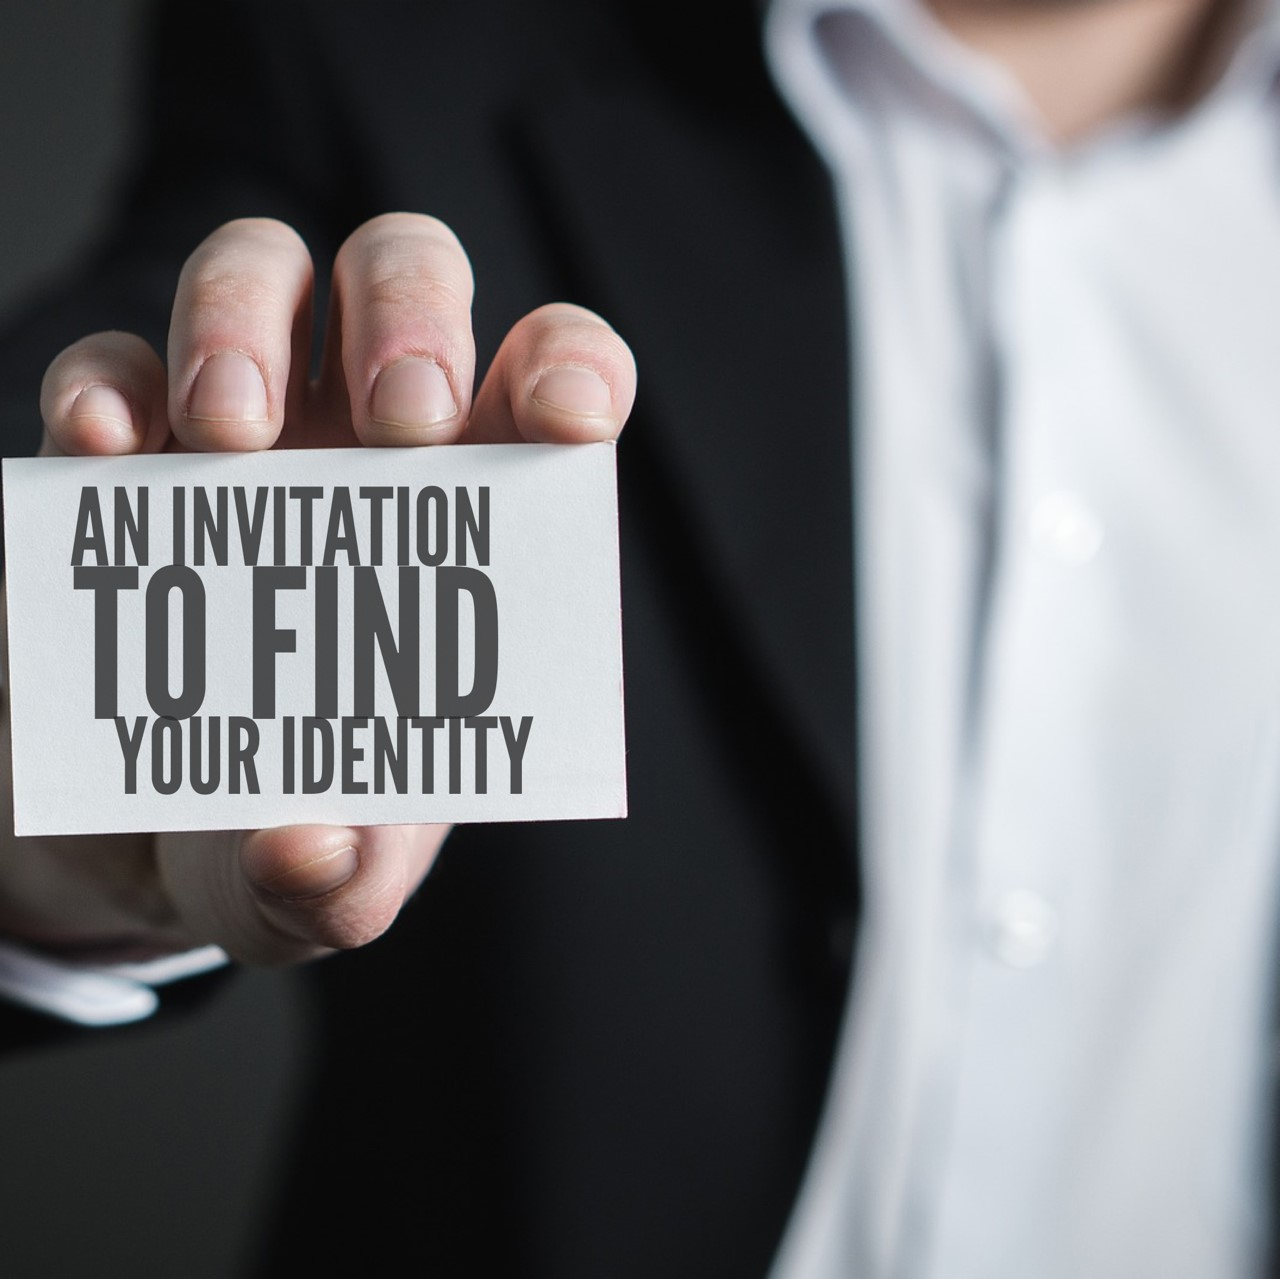 An Invitation To Find Your Identity